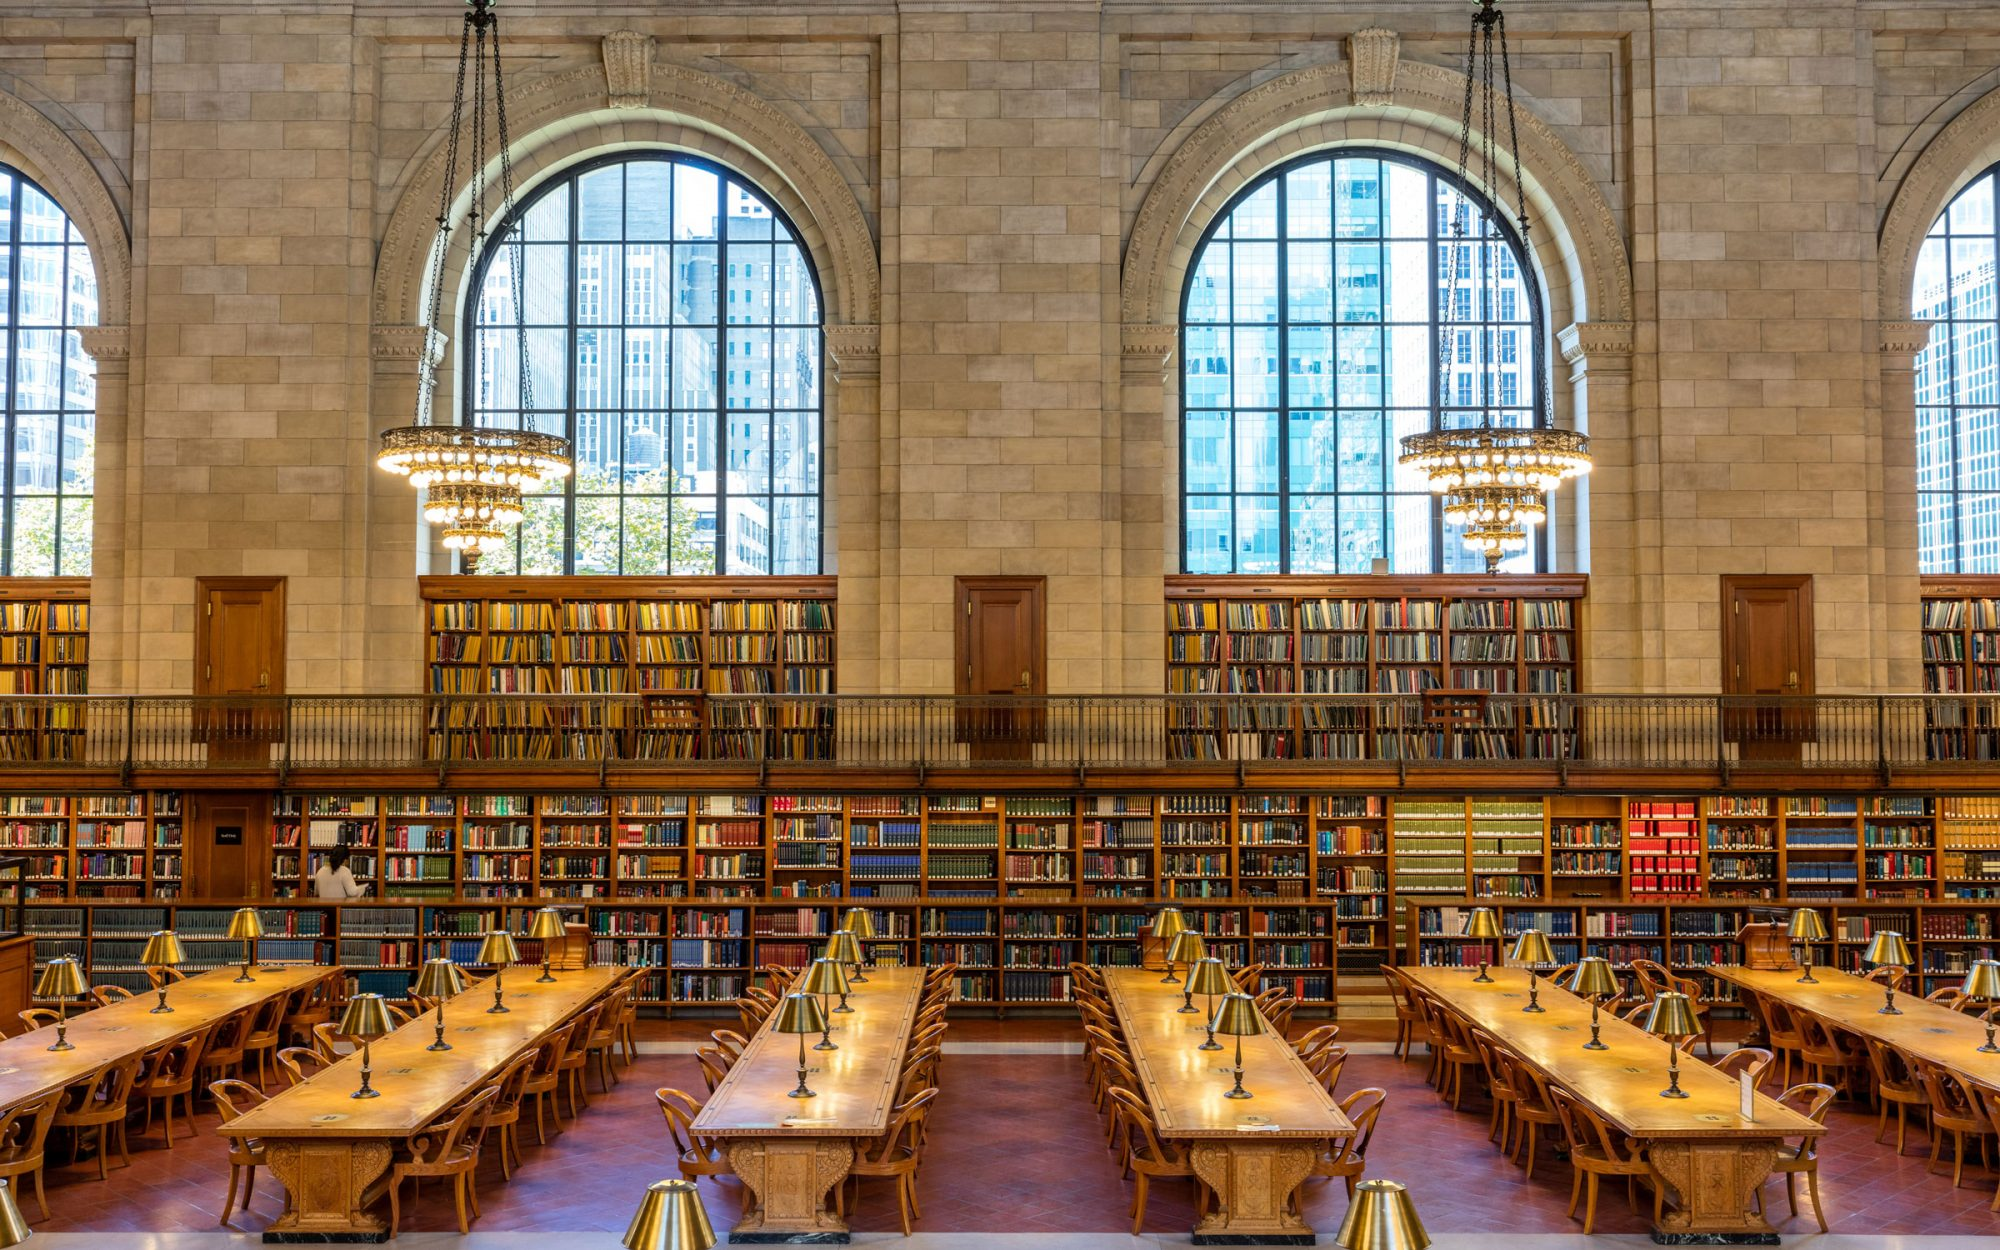 The Rose Room Re-Opens At New York Public Library